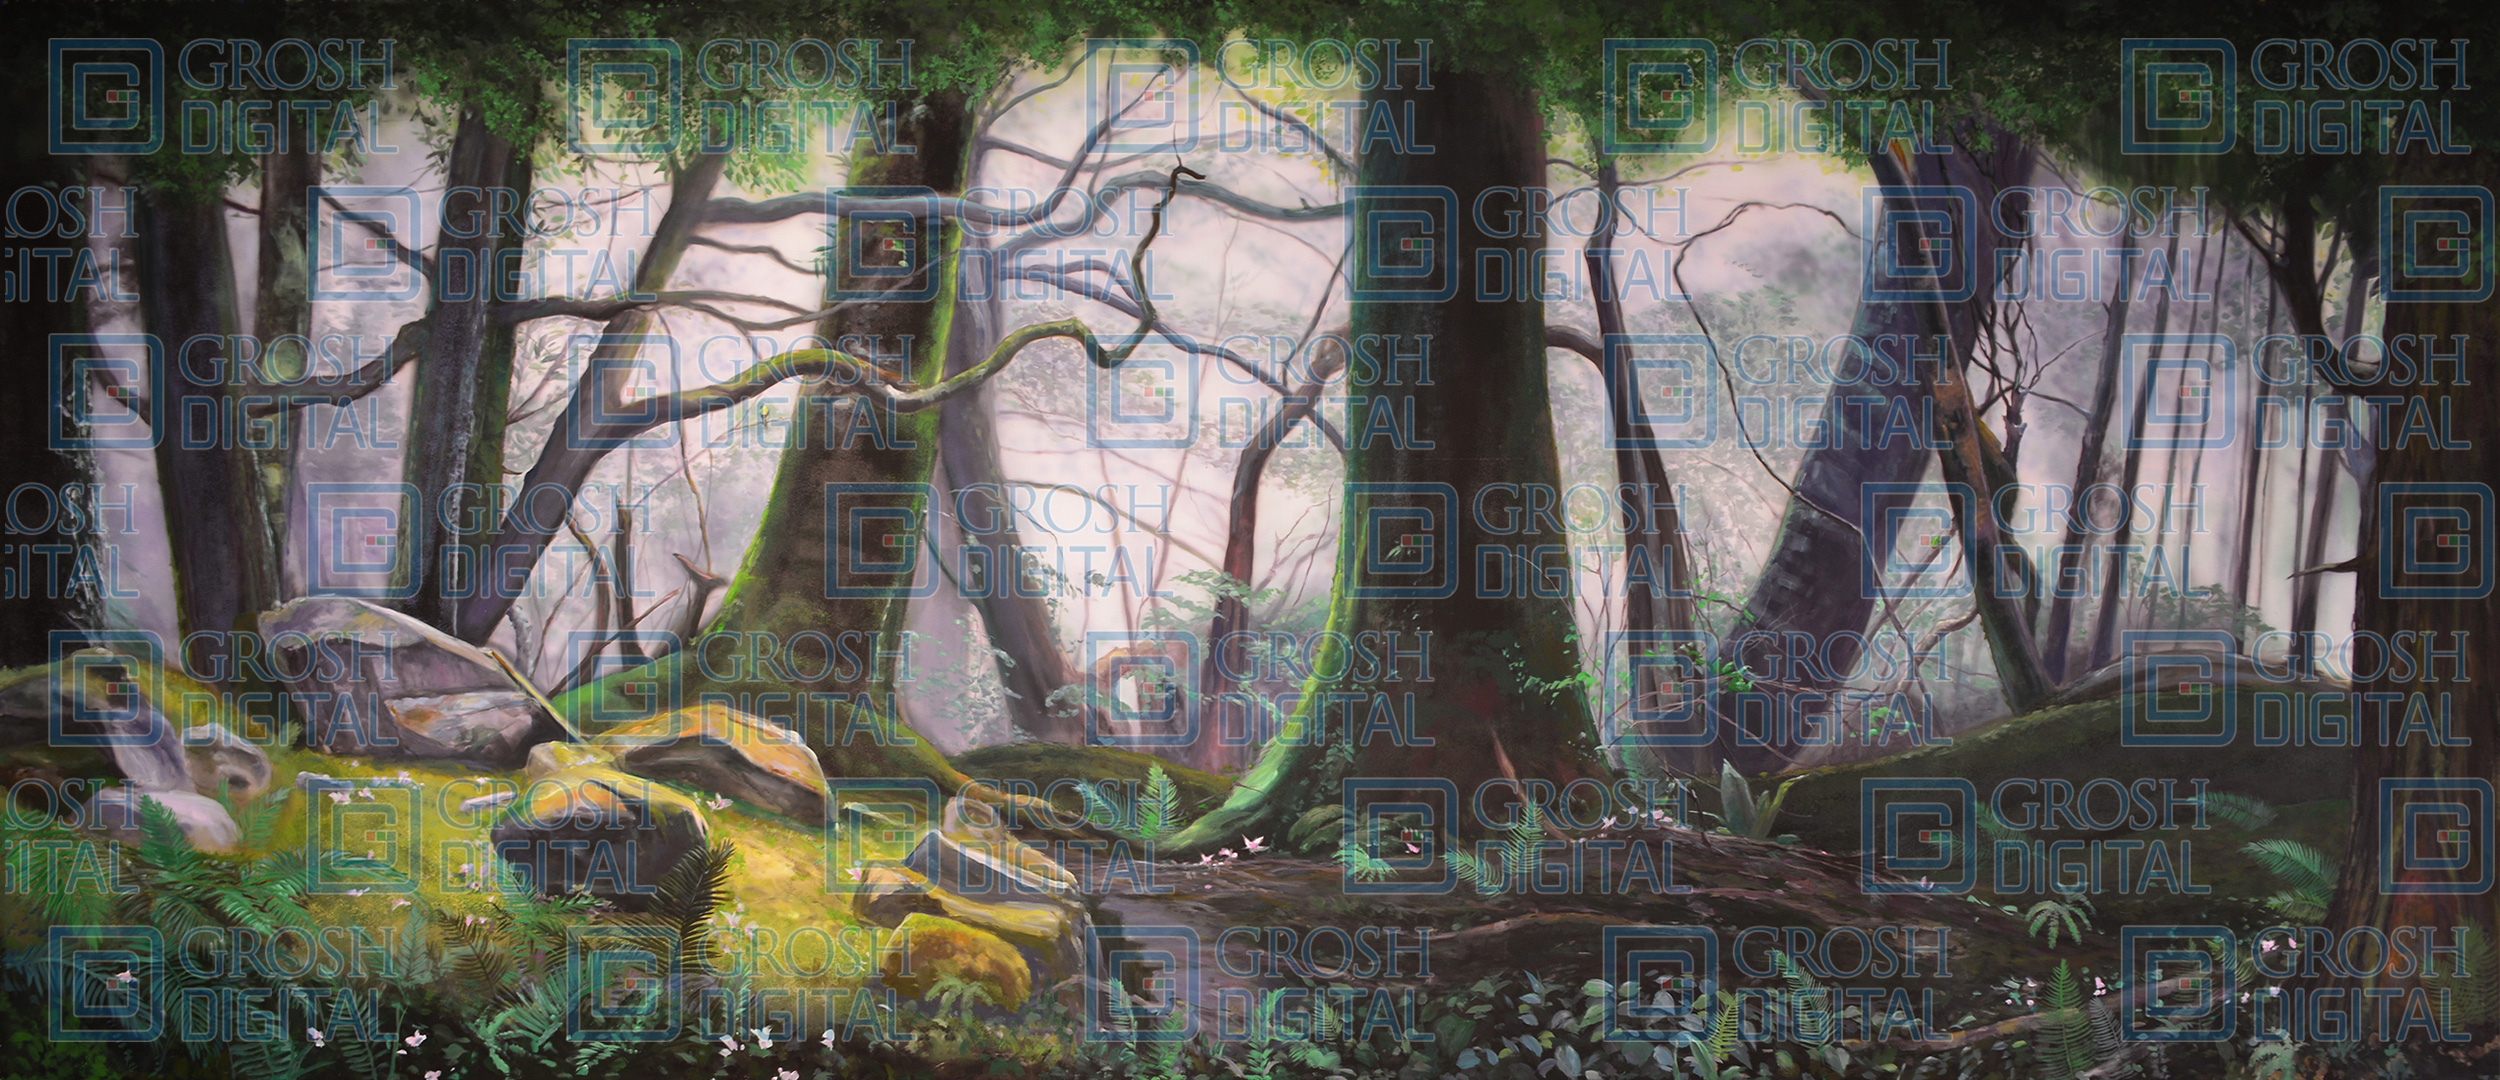 Forest Panel 2 Projected Backdrop for Addams Family, Alice in Wonderland, Beauty and the Beast, Big Fish, Brigadoon, Cinderella, Forest, Into the Woods, Lion King, Madagascar, Peter Pan, Shrek, Sleeping Beauty, Wizard of Oz